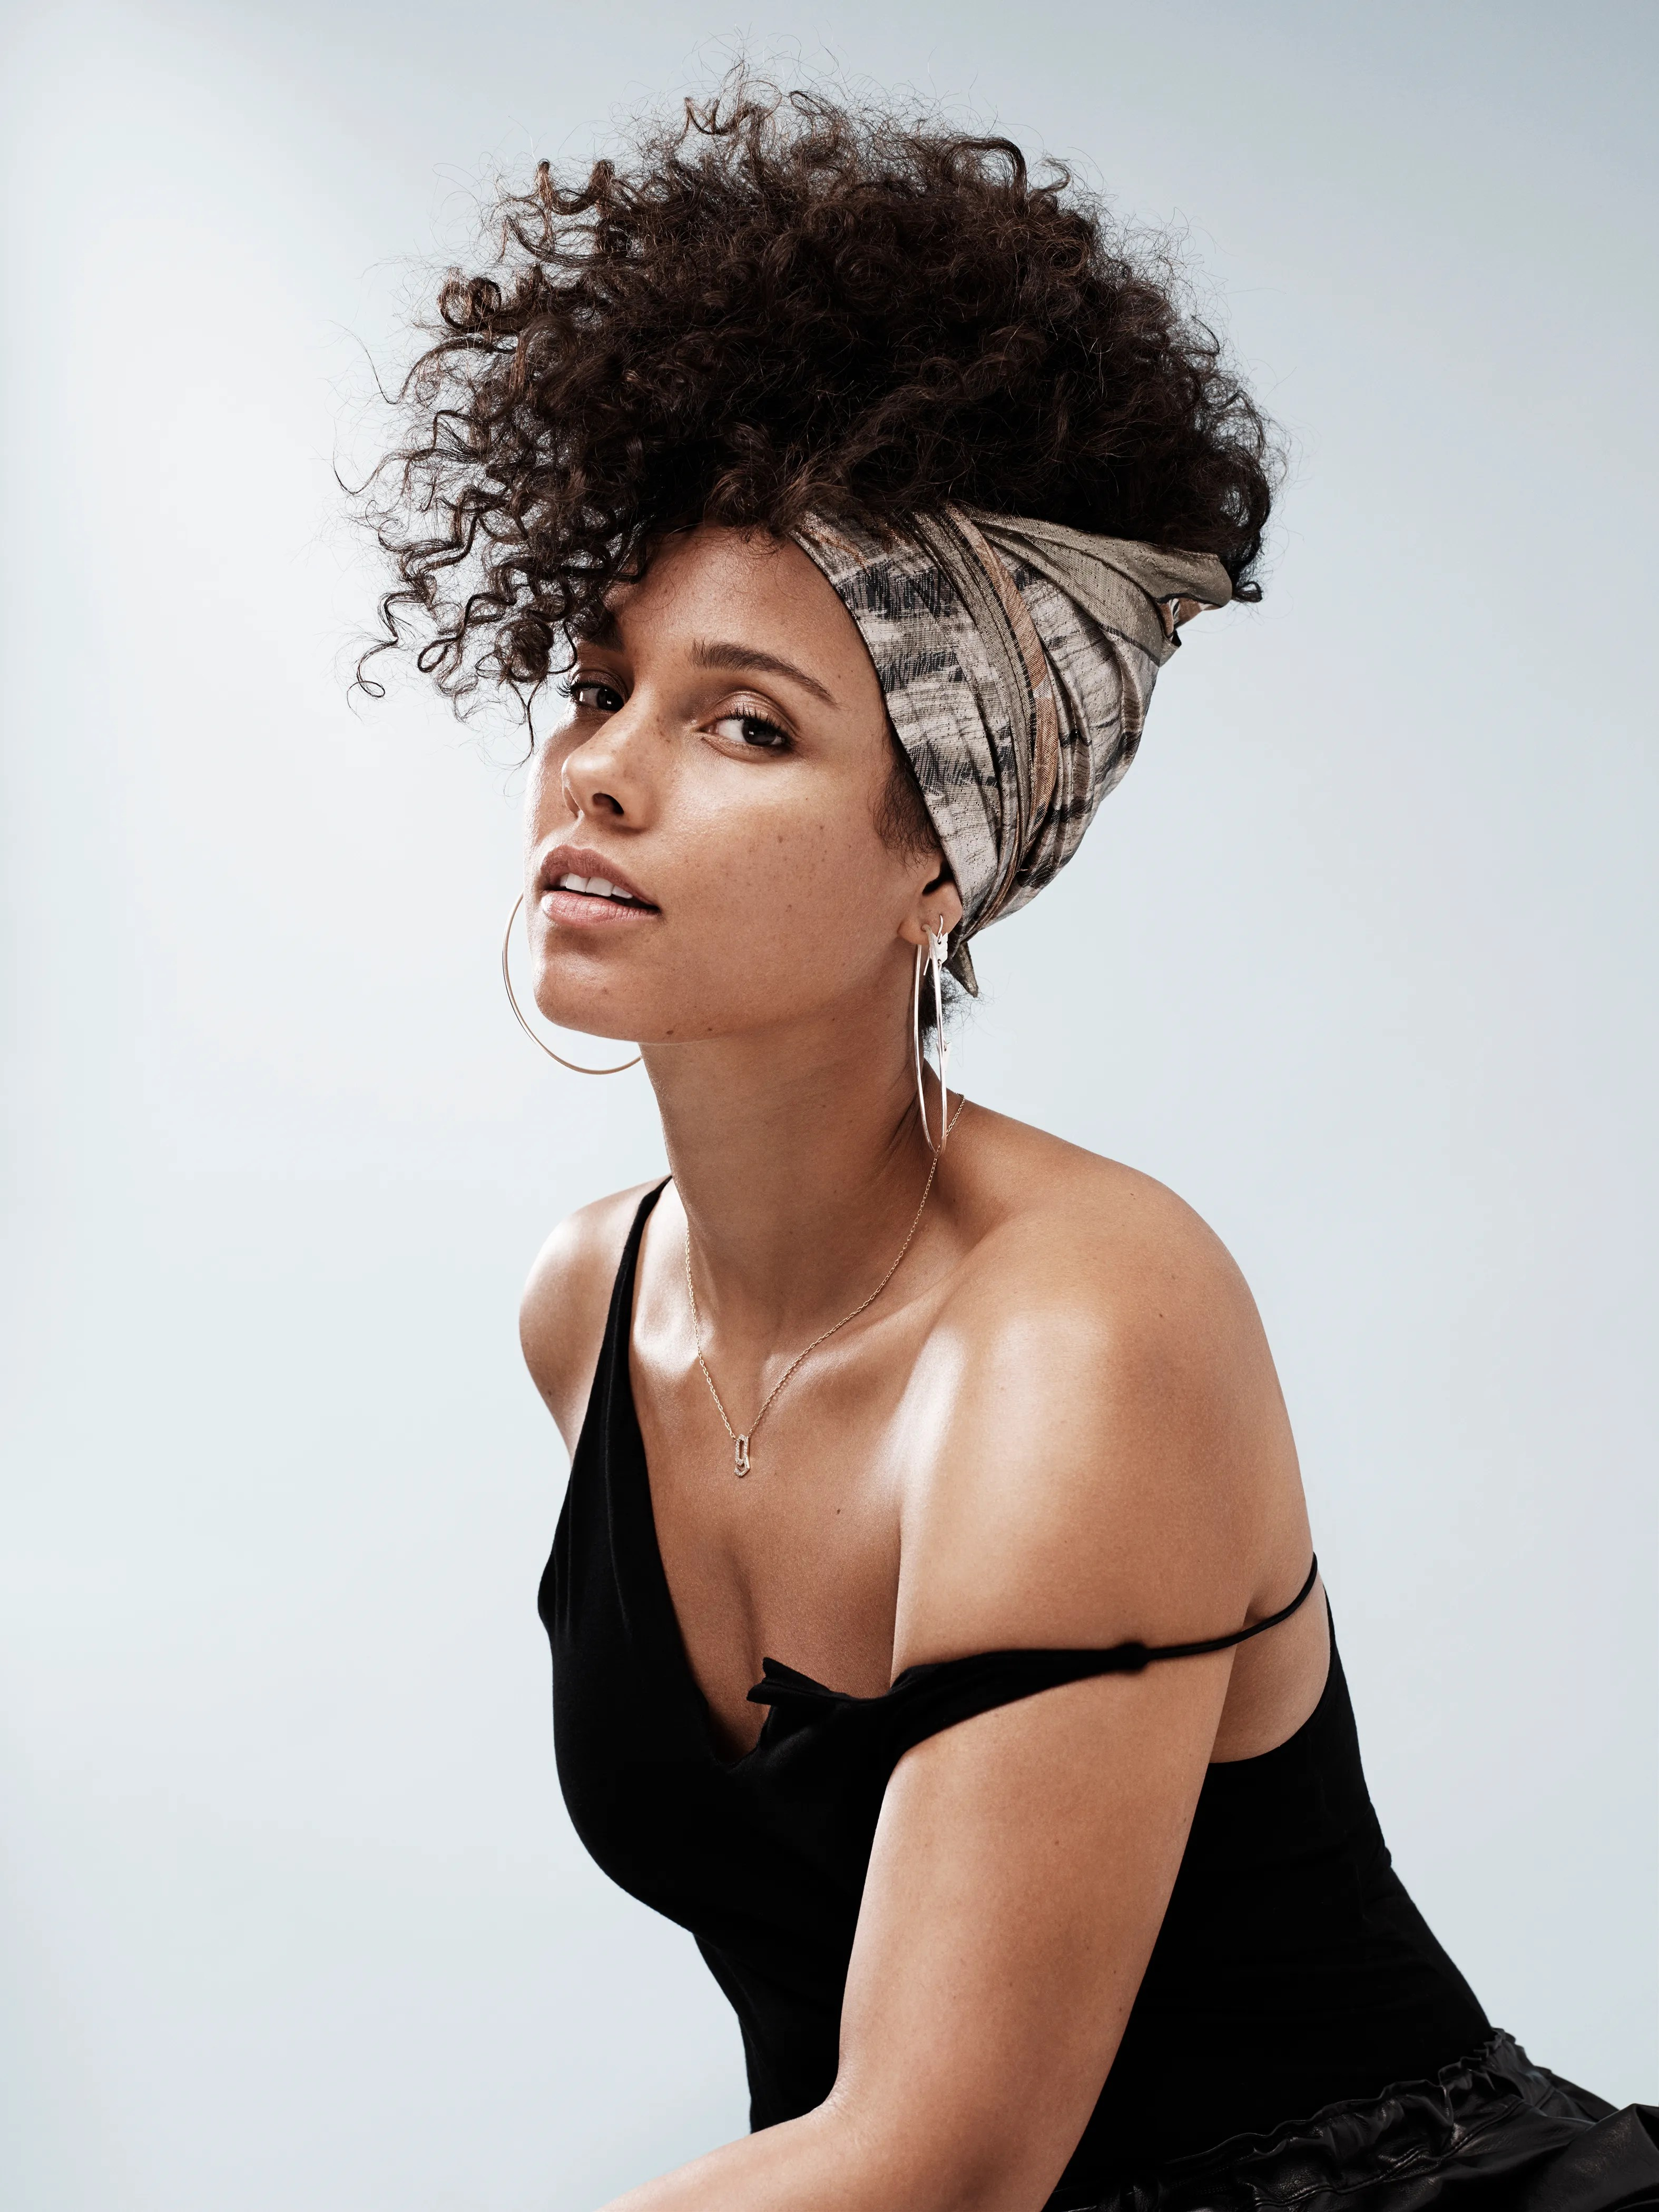 Alicia Keys Ive Come To A Place Where I Can Be Honest And Raw